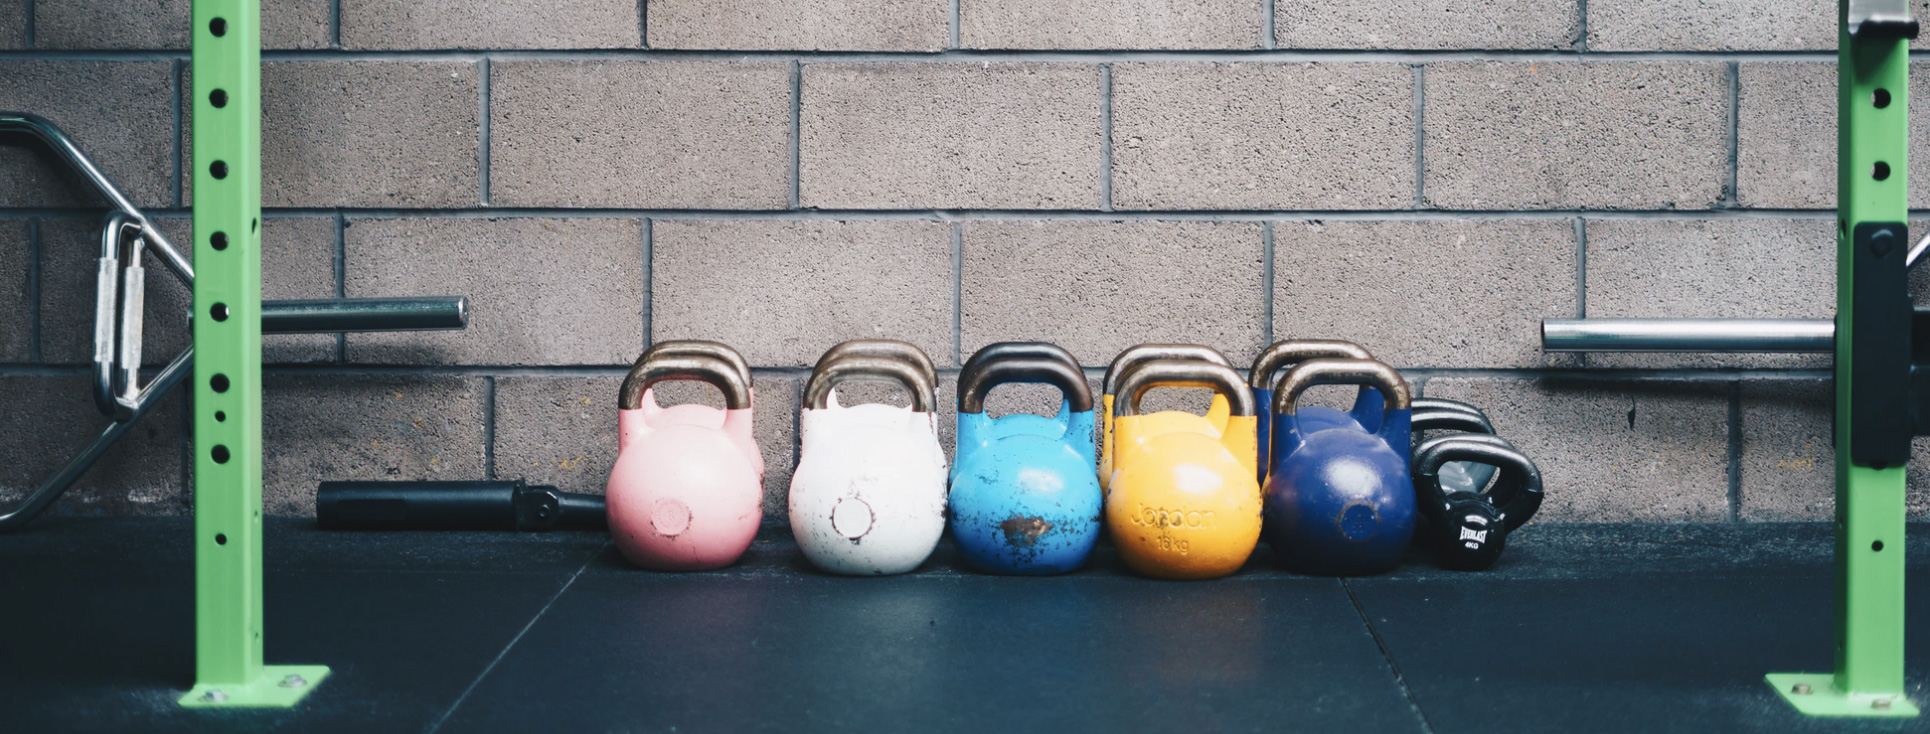 Kettlebells lined up in a gym for workout